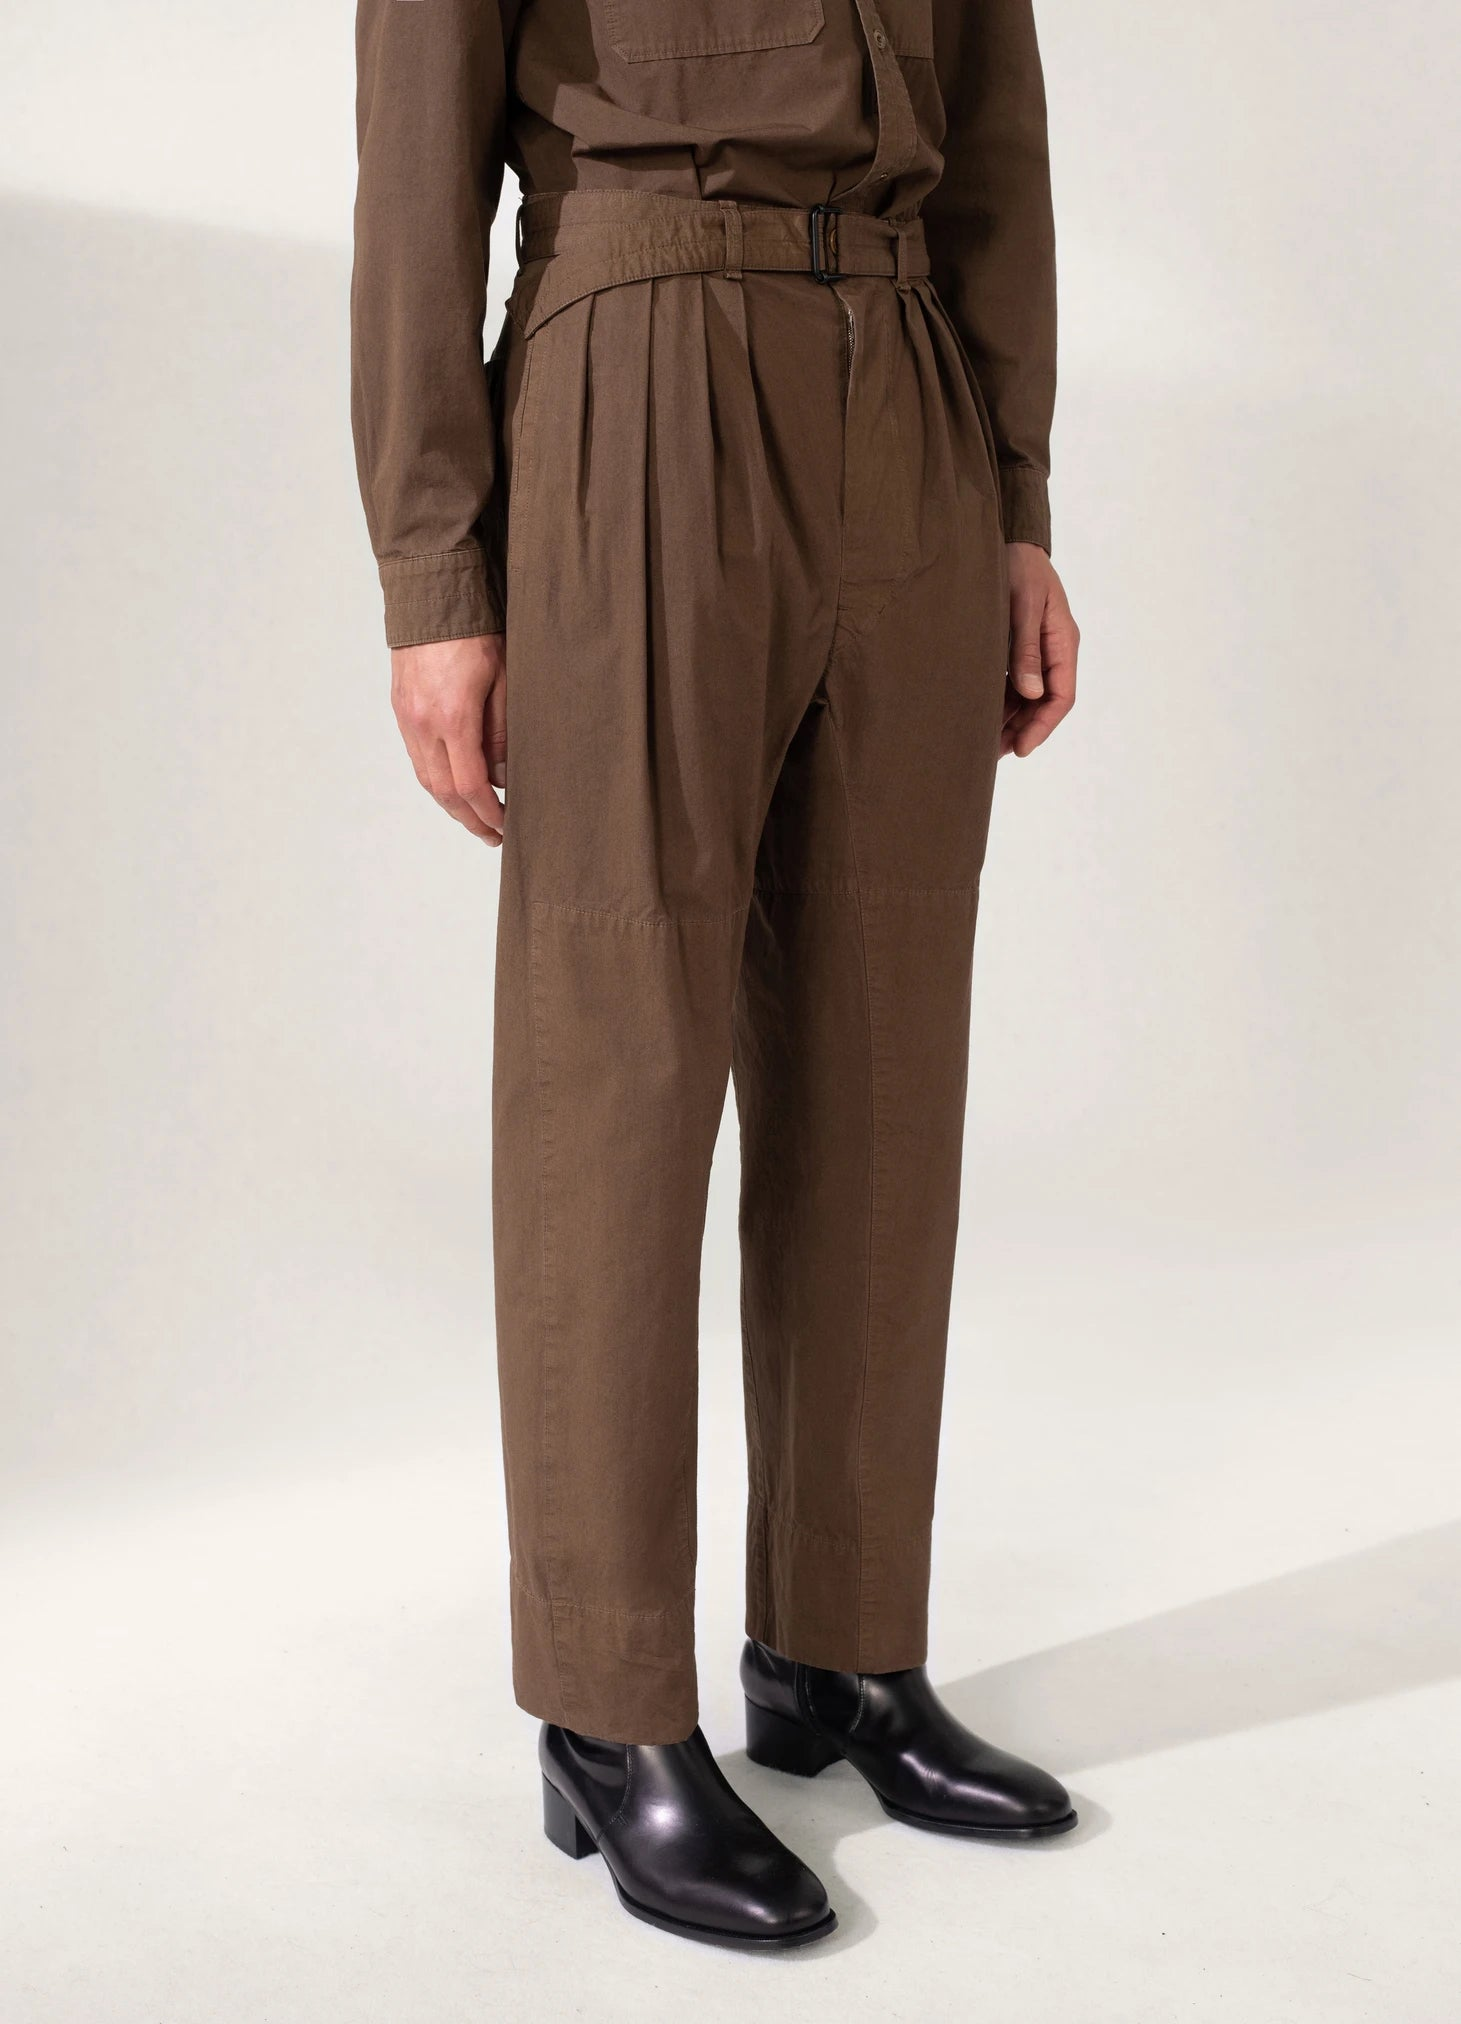 Unisex 4 pleats pants dark brown